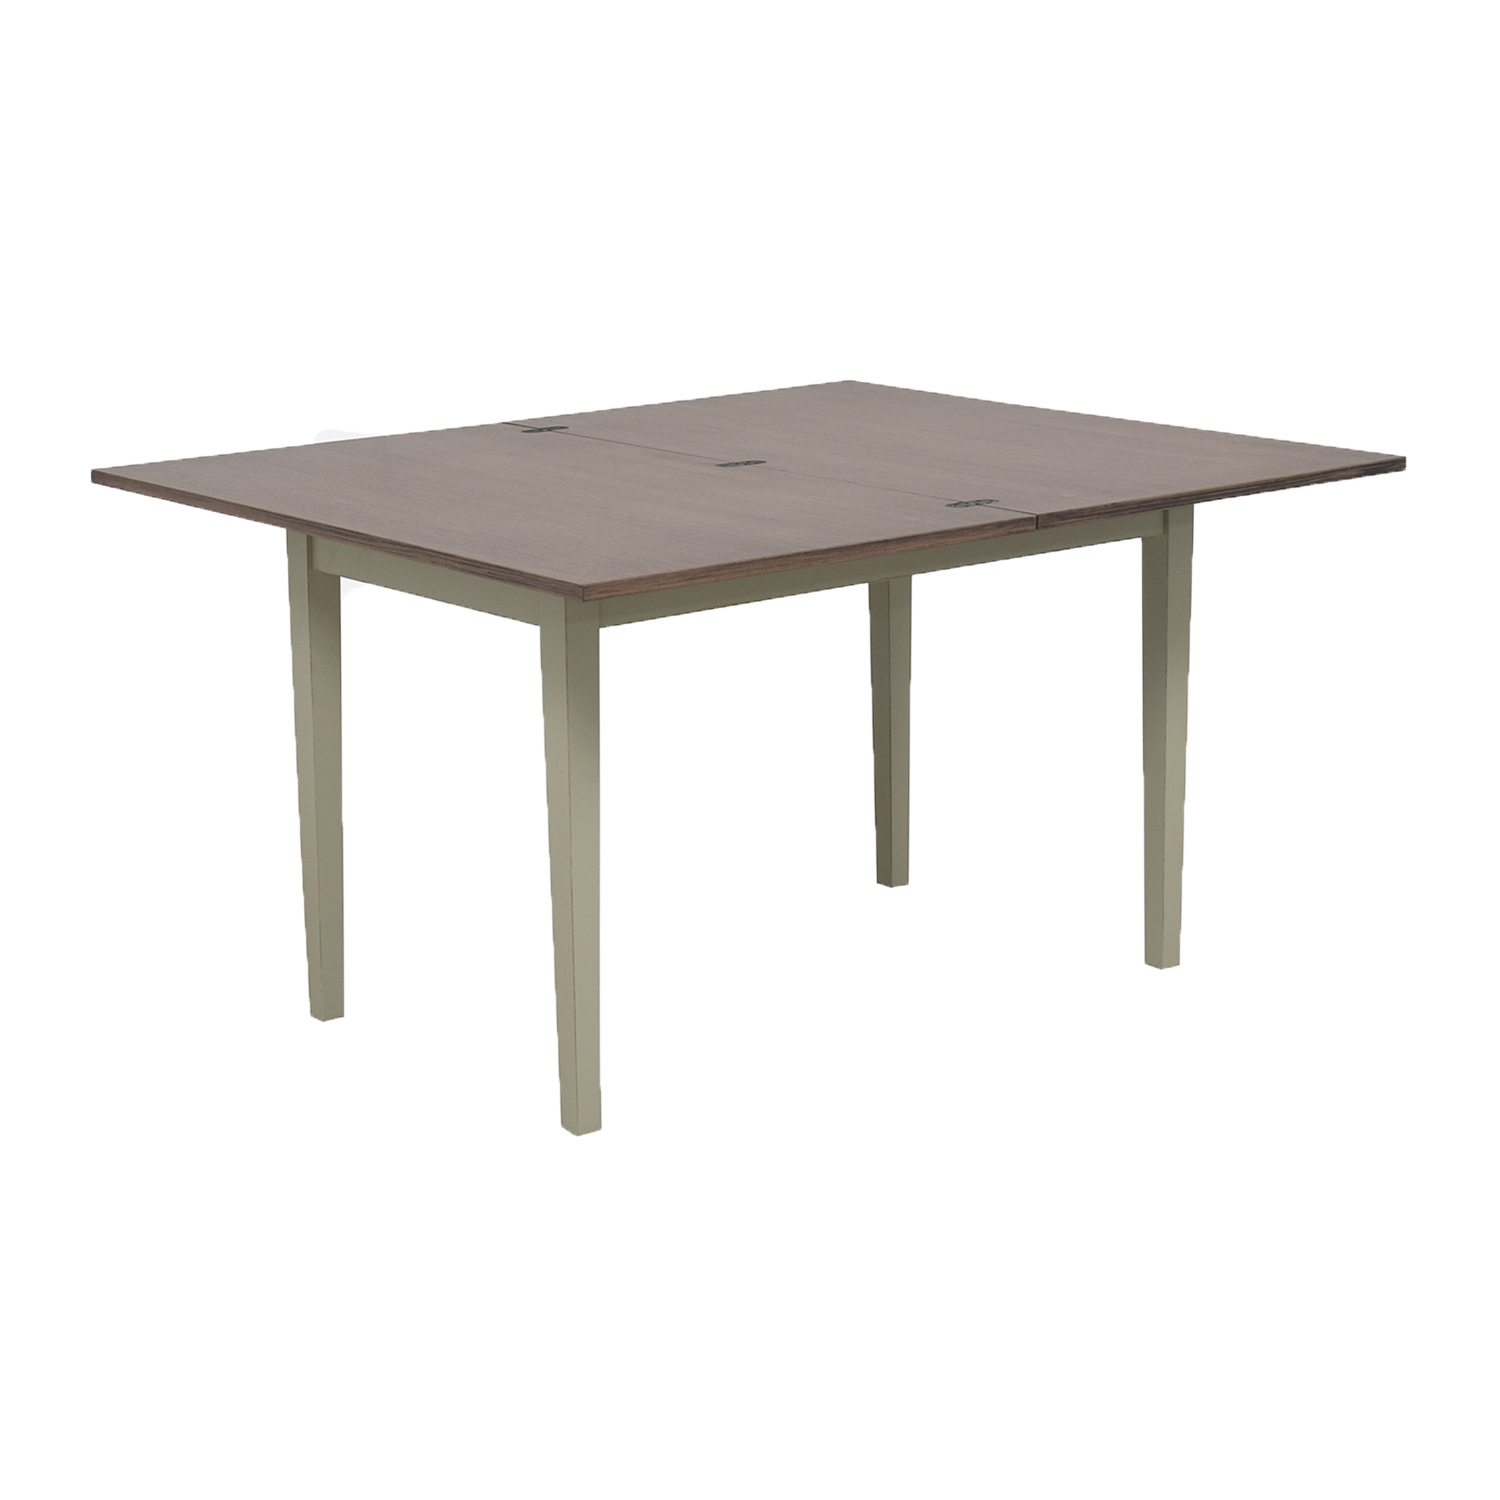 shop Crate & Barrel Flip Dining Table Small Vamelie Crate & Barrel